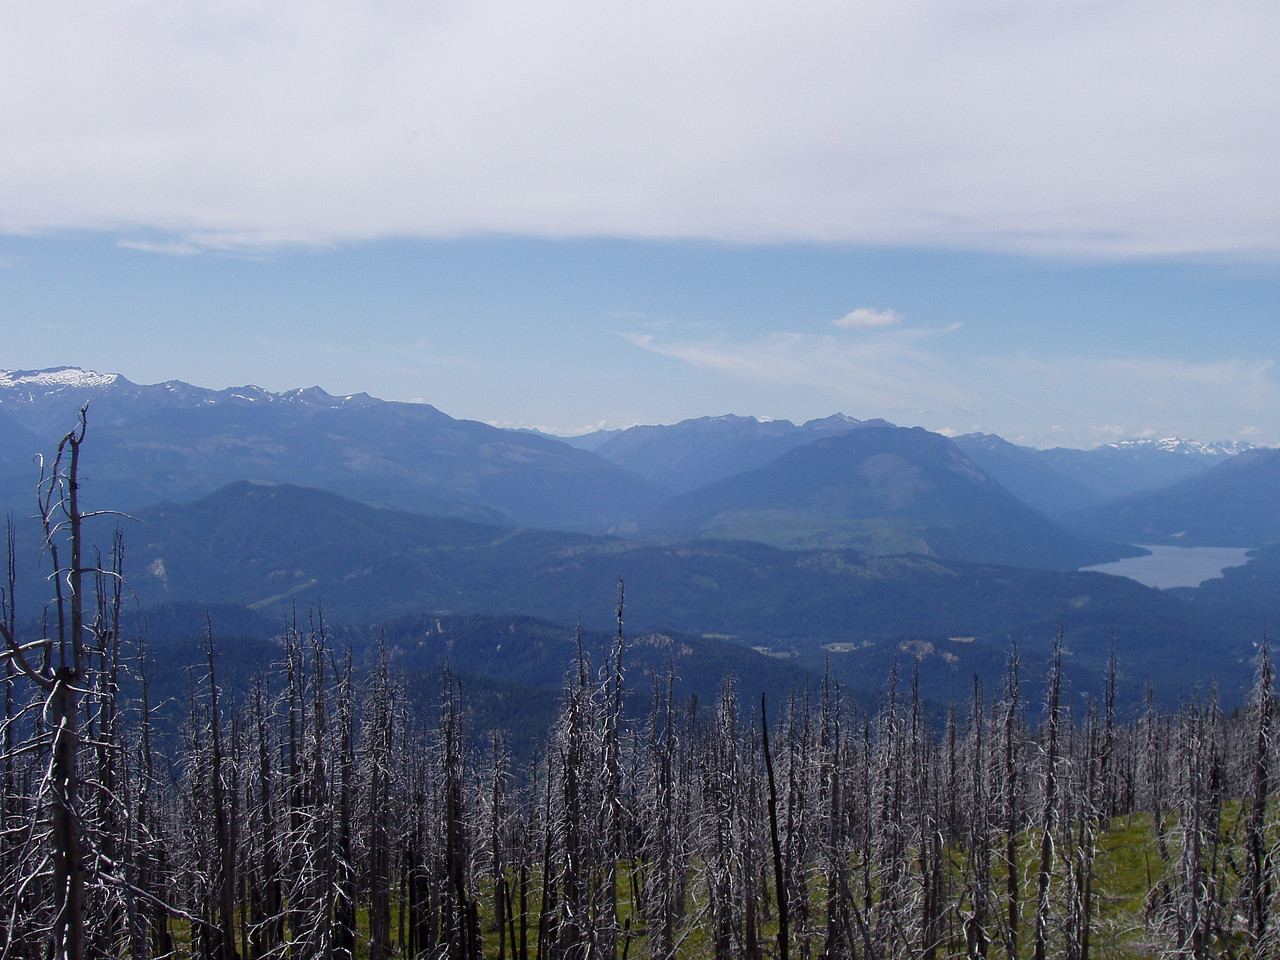 This is the central photo in the group of three.  Lake Wenatchee on the right edge.  Notice the burned trees in the foreground...